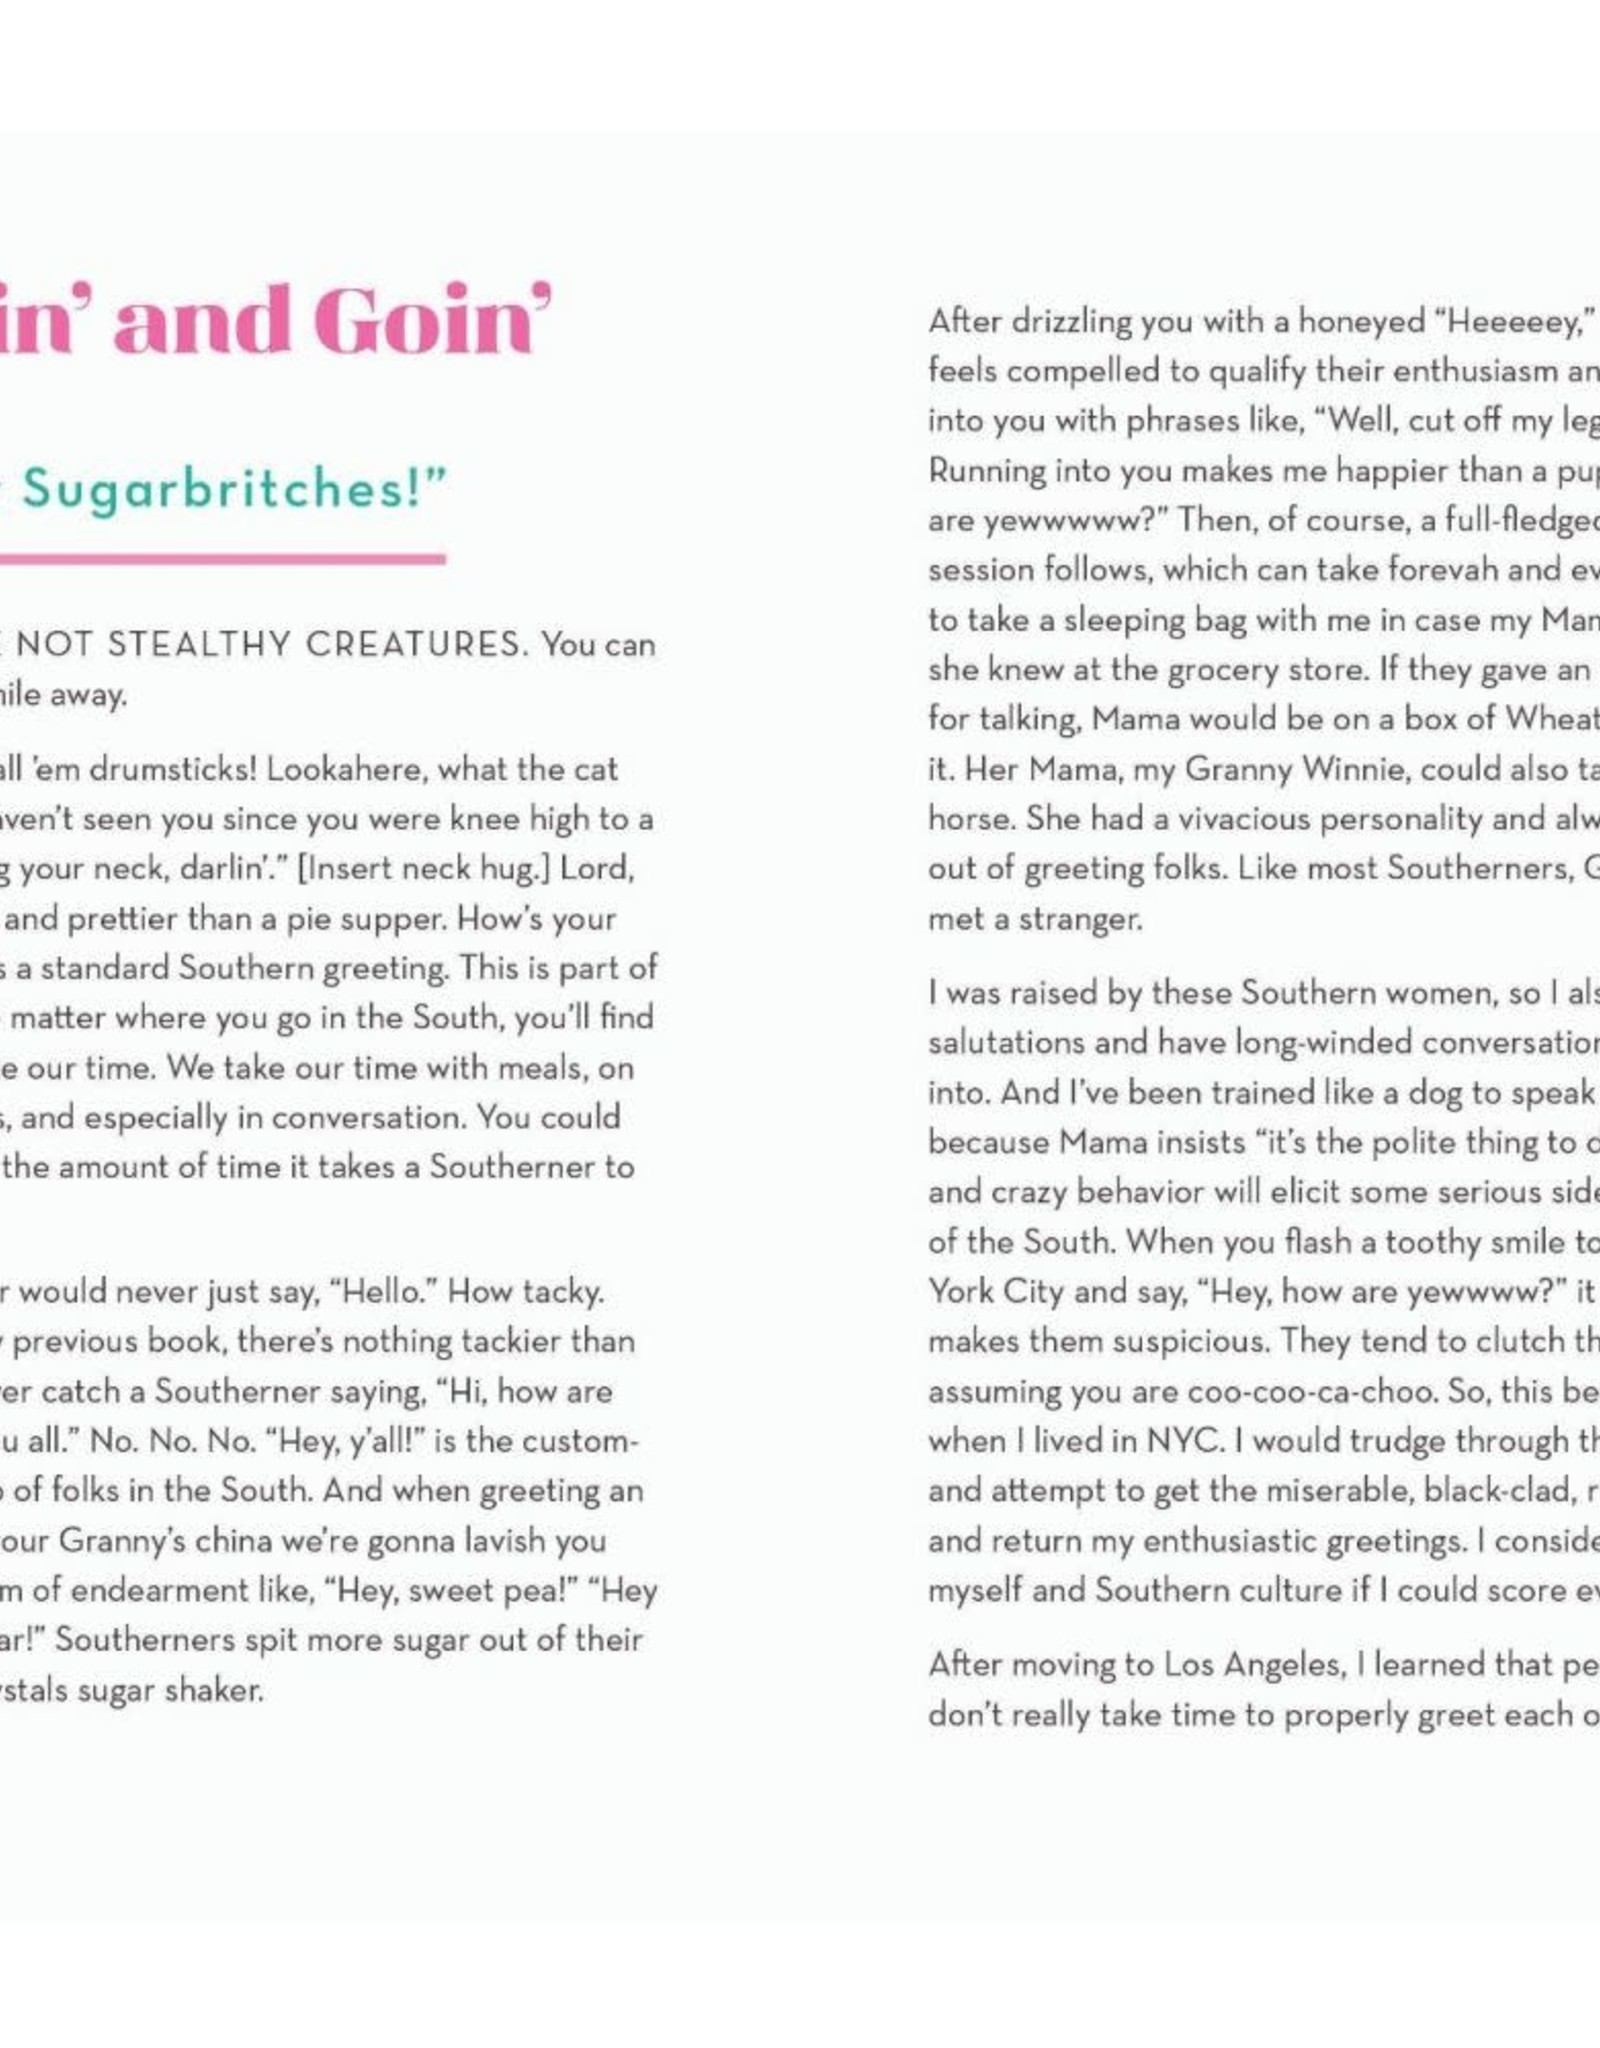 Book - Embrace Your Southern, Sugar!